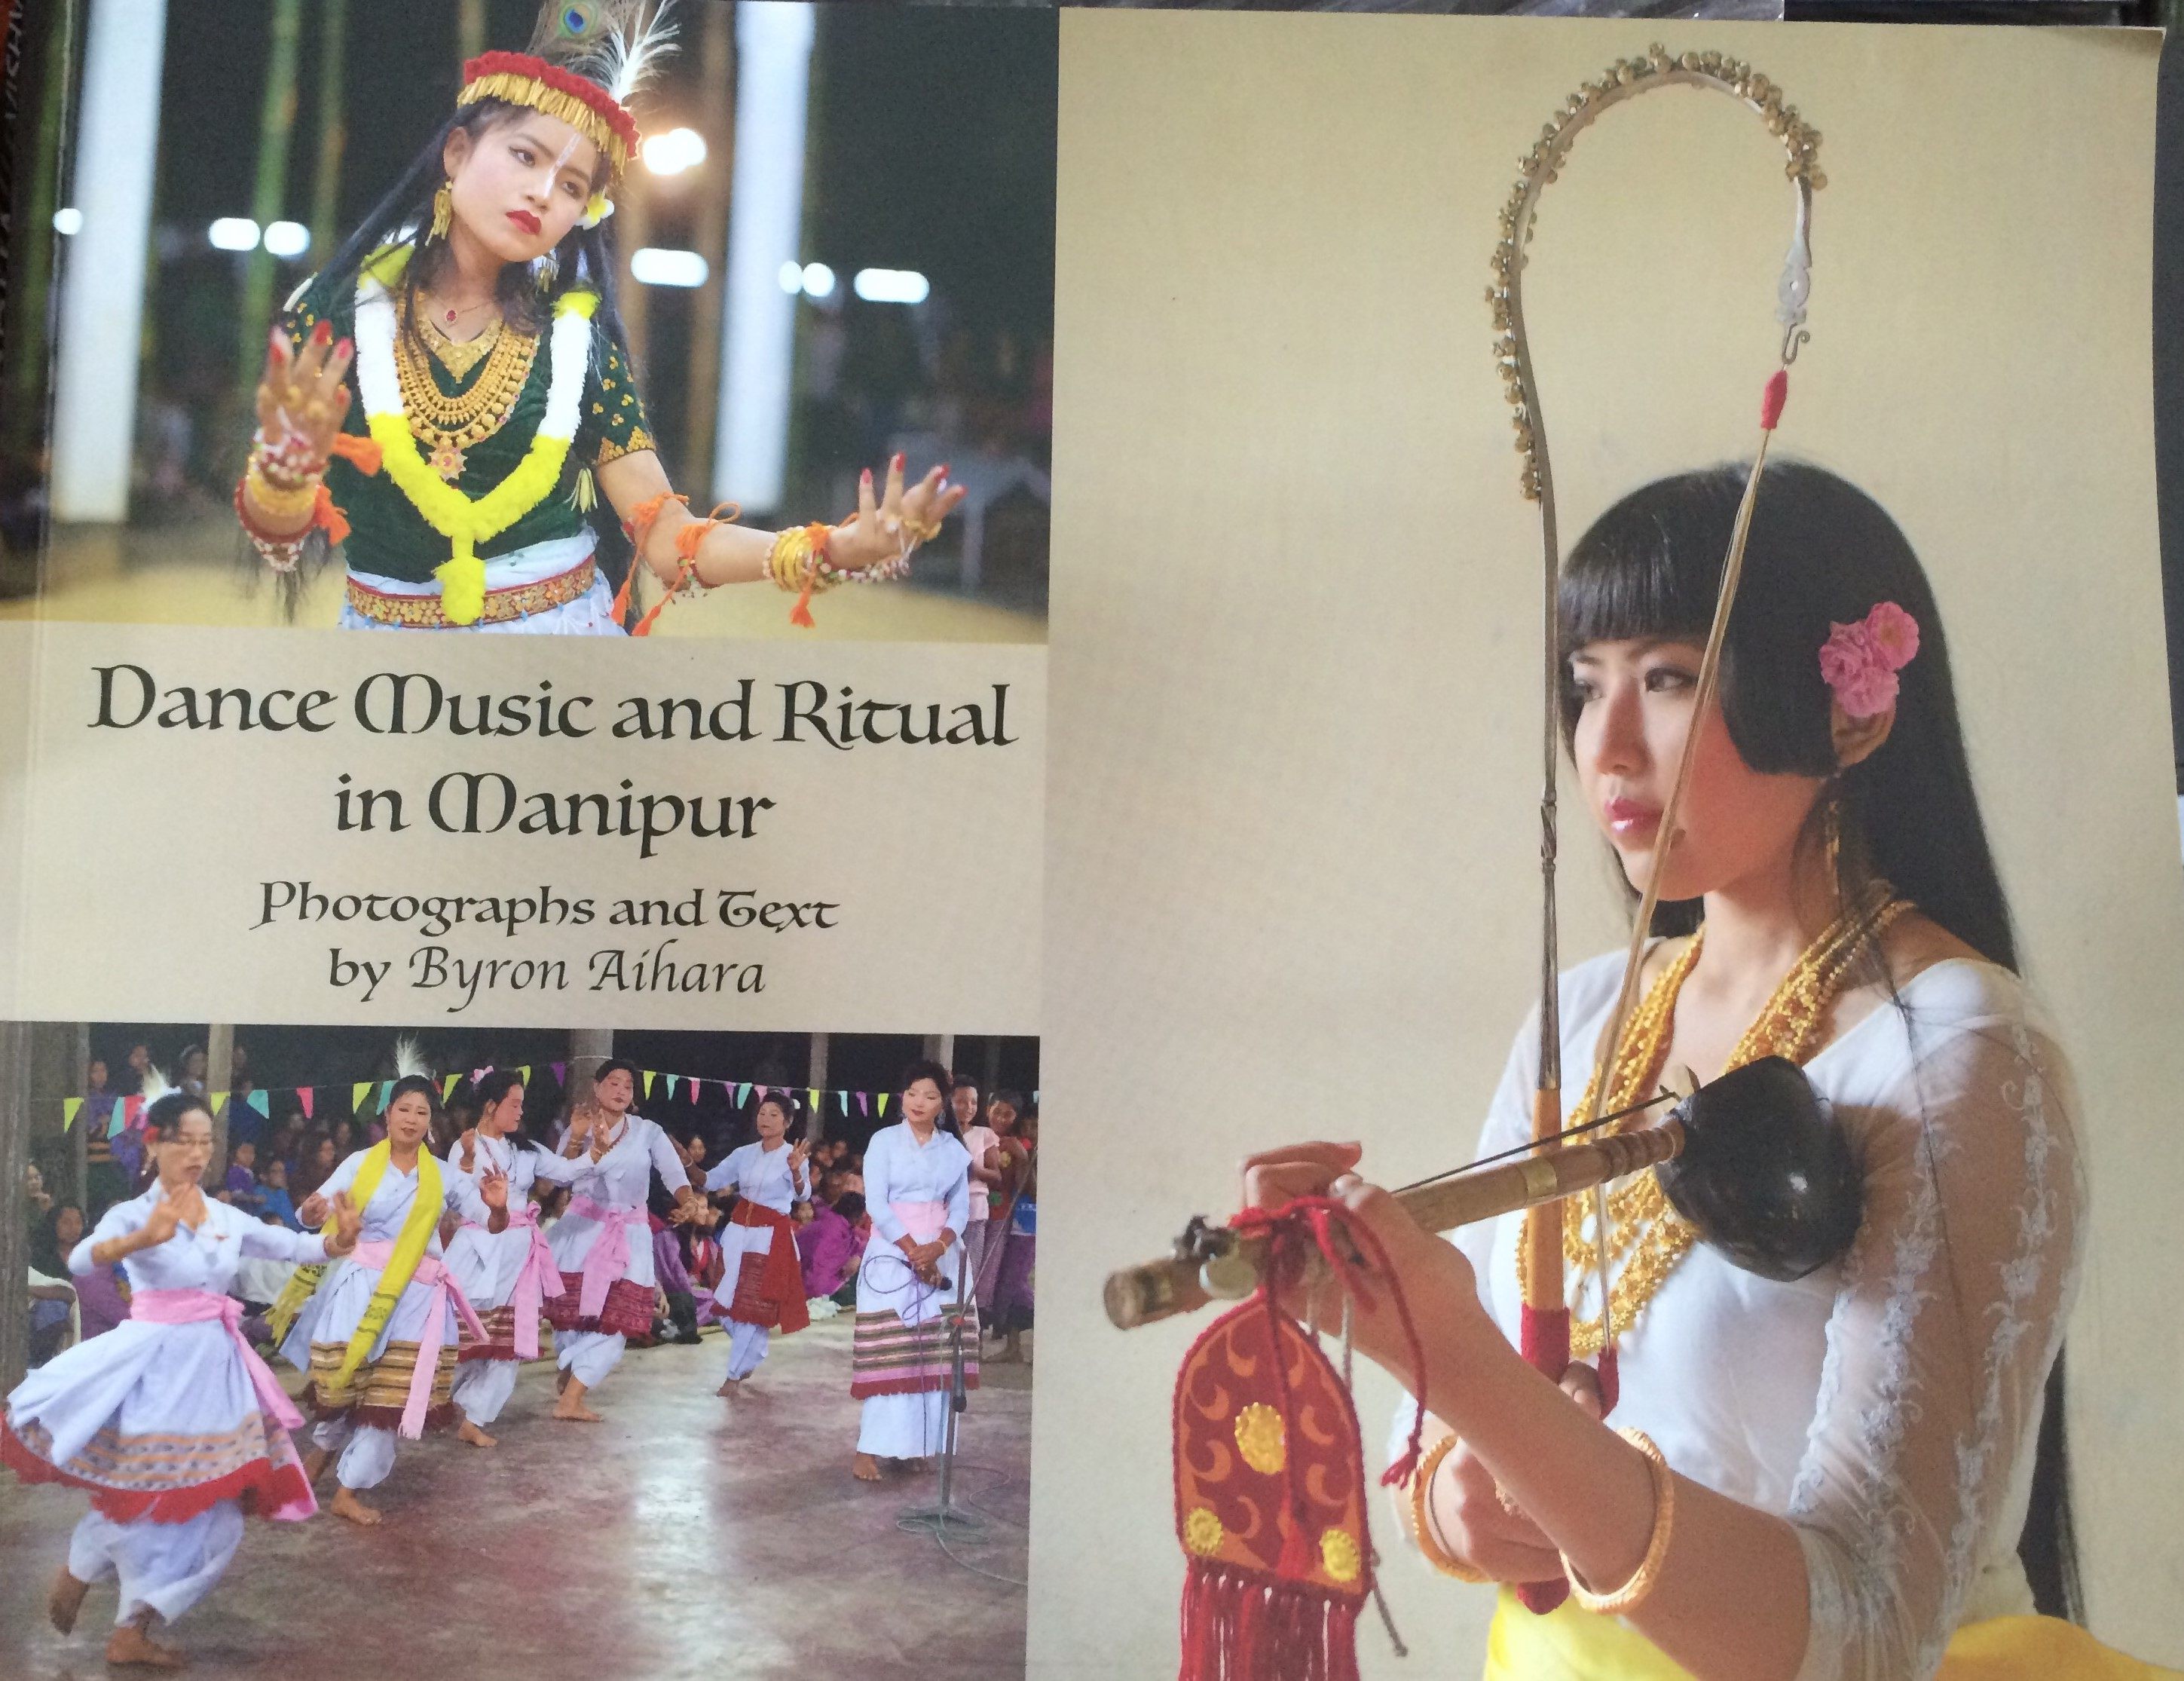 chair dance ritual song hanging swing indoor canada music and in manipur vajra bookshop